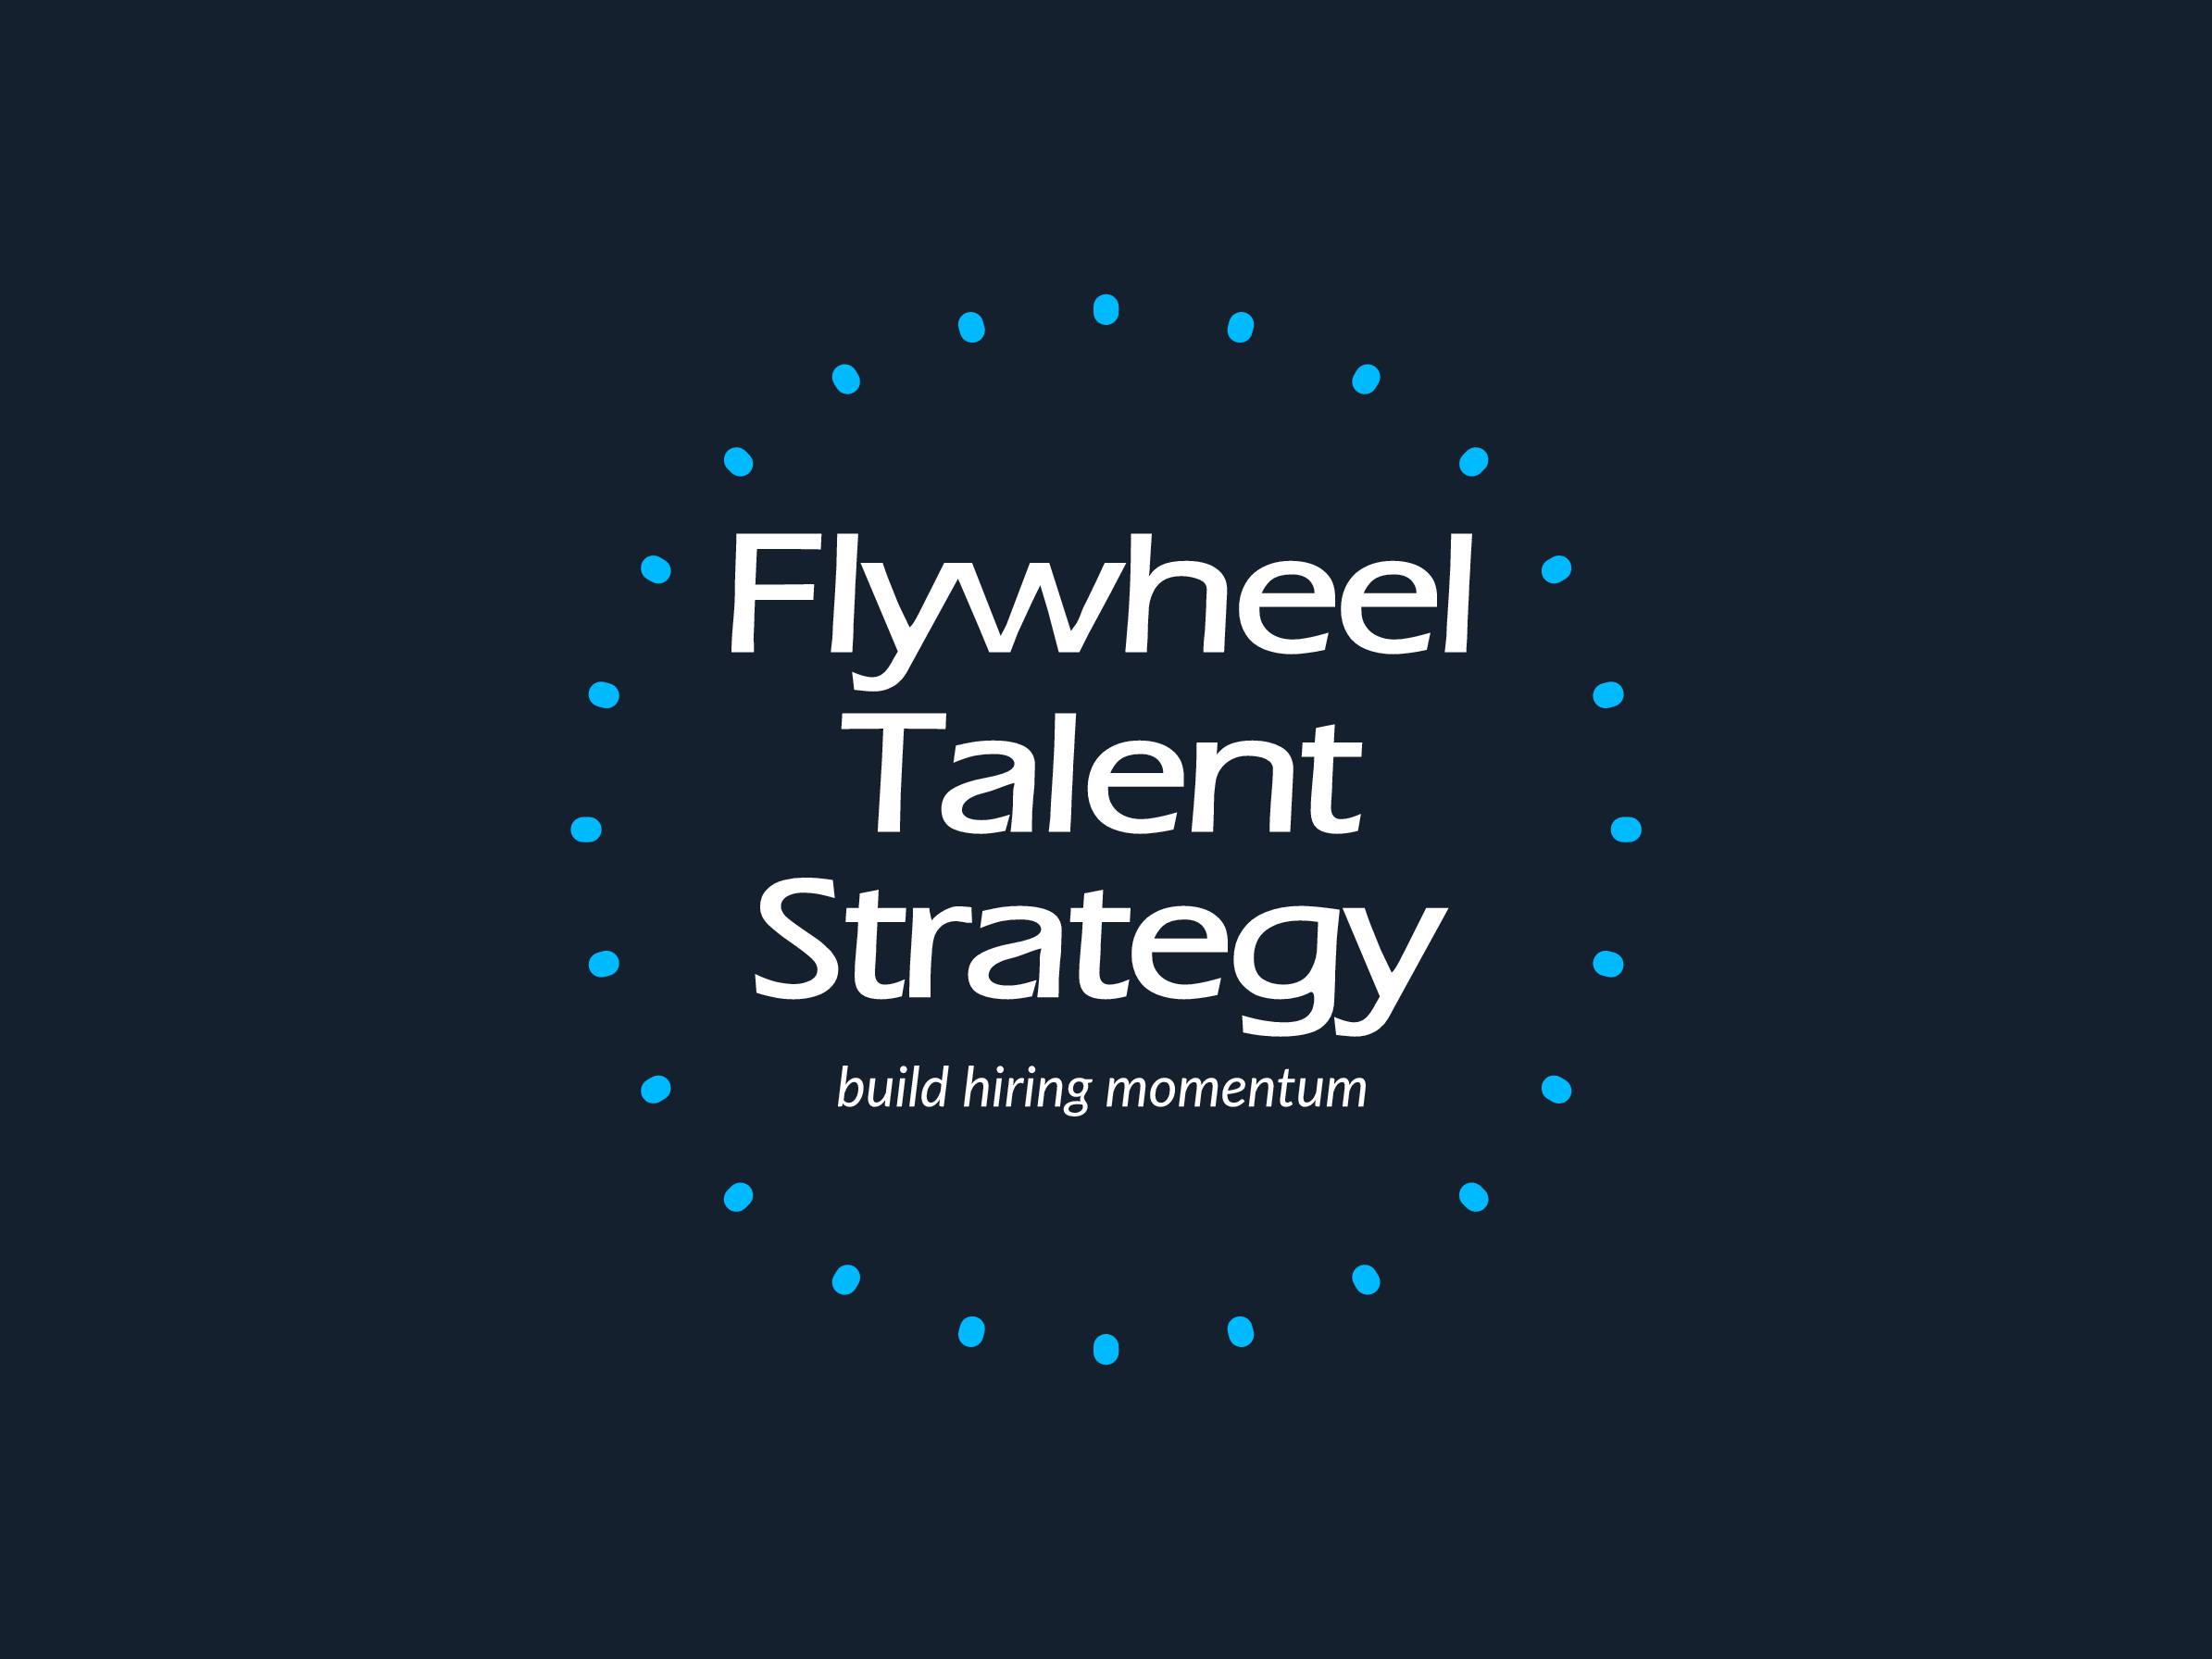 Flywheel Talent Strategy